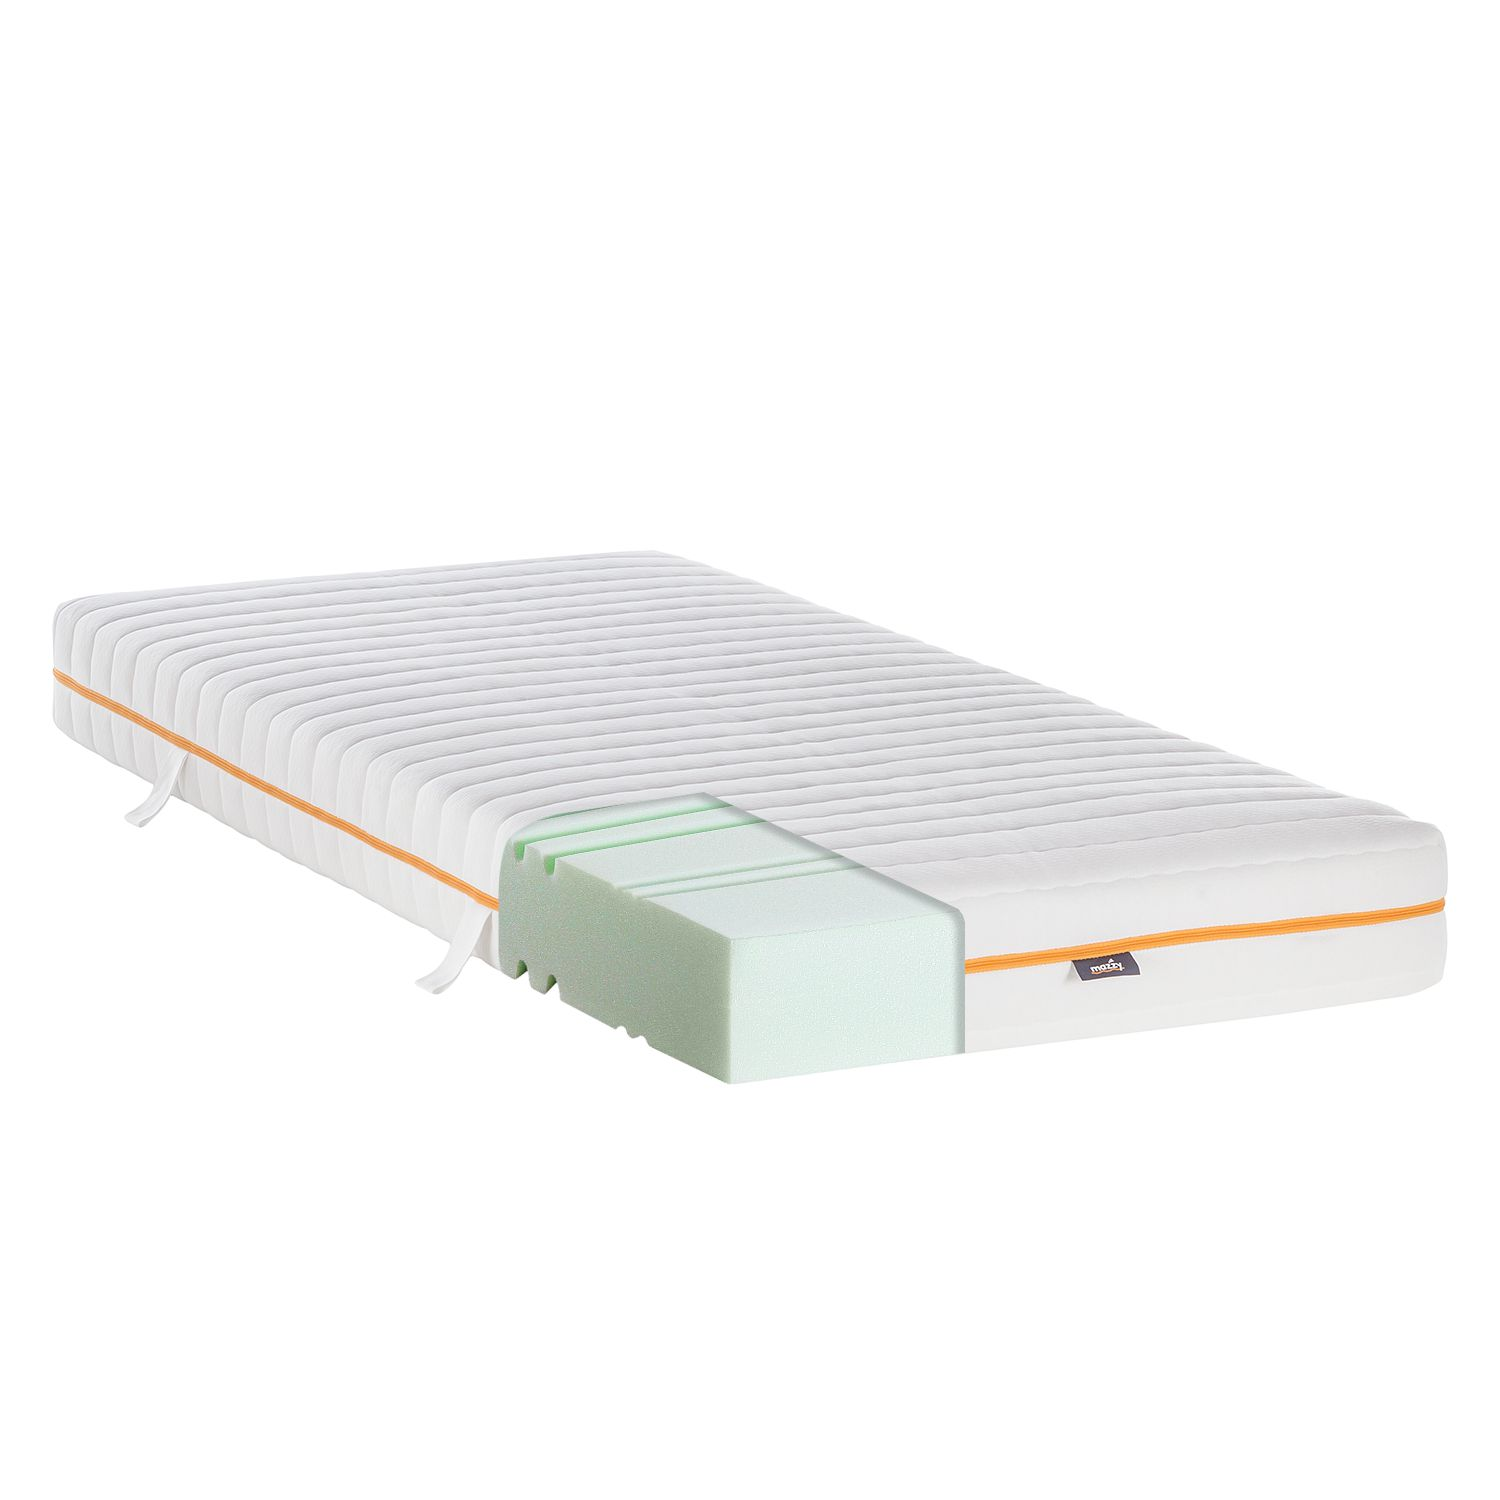 Matelas Mazzy Mousse froide - 90 x 200cm, mazzy